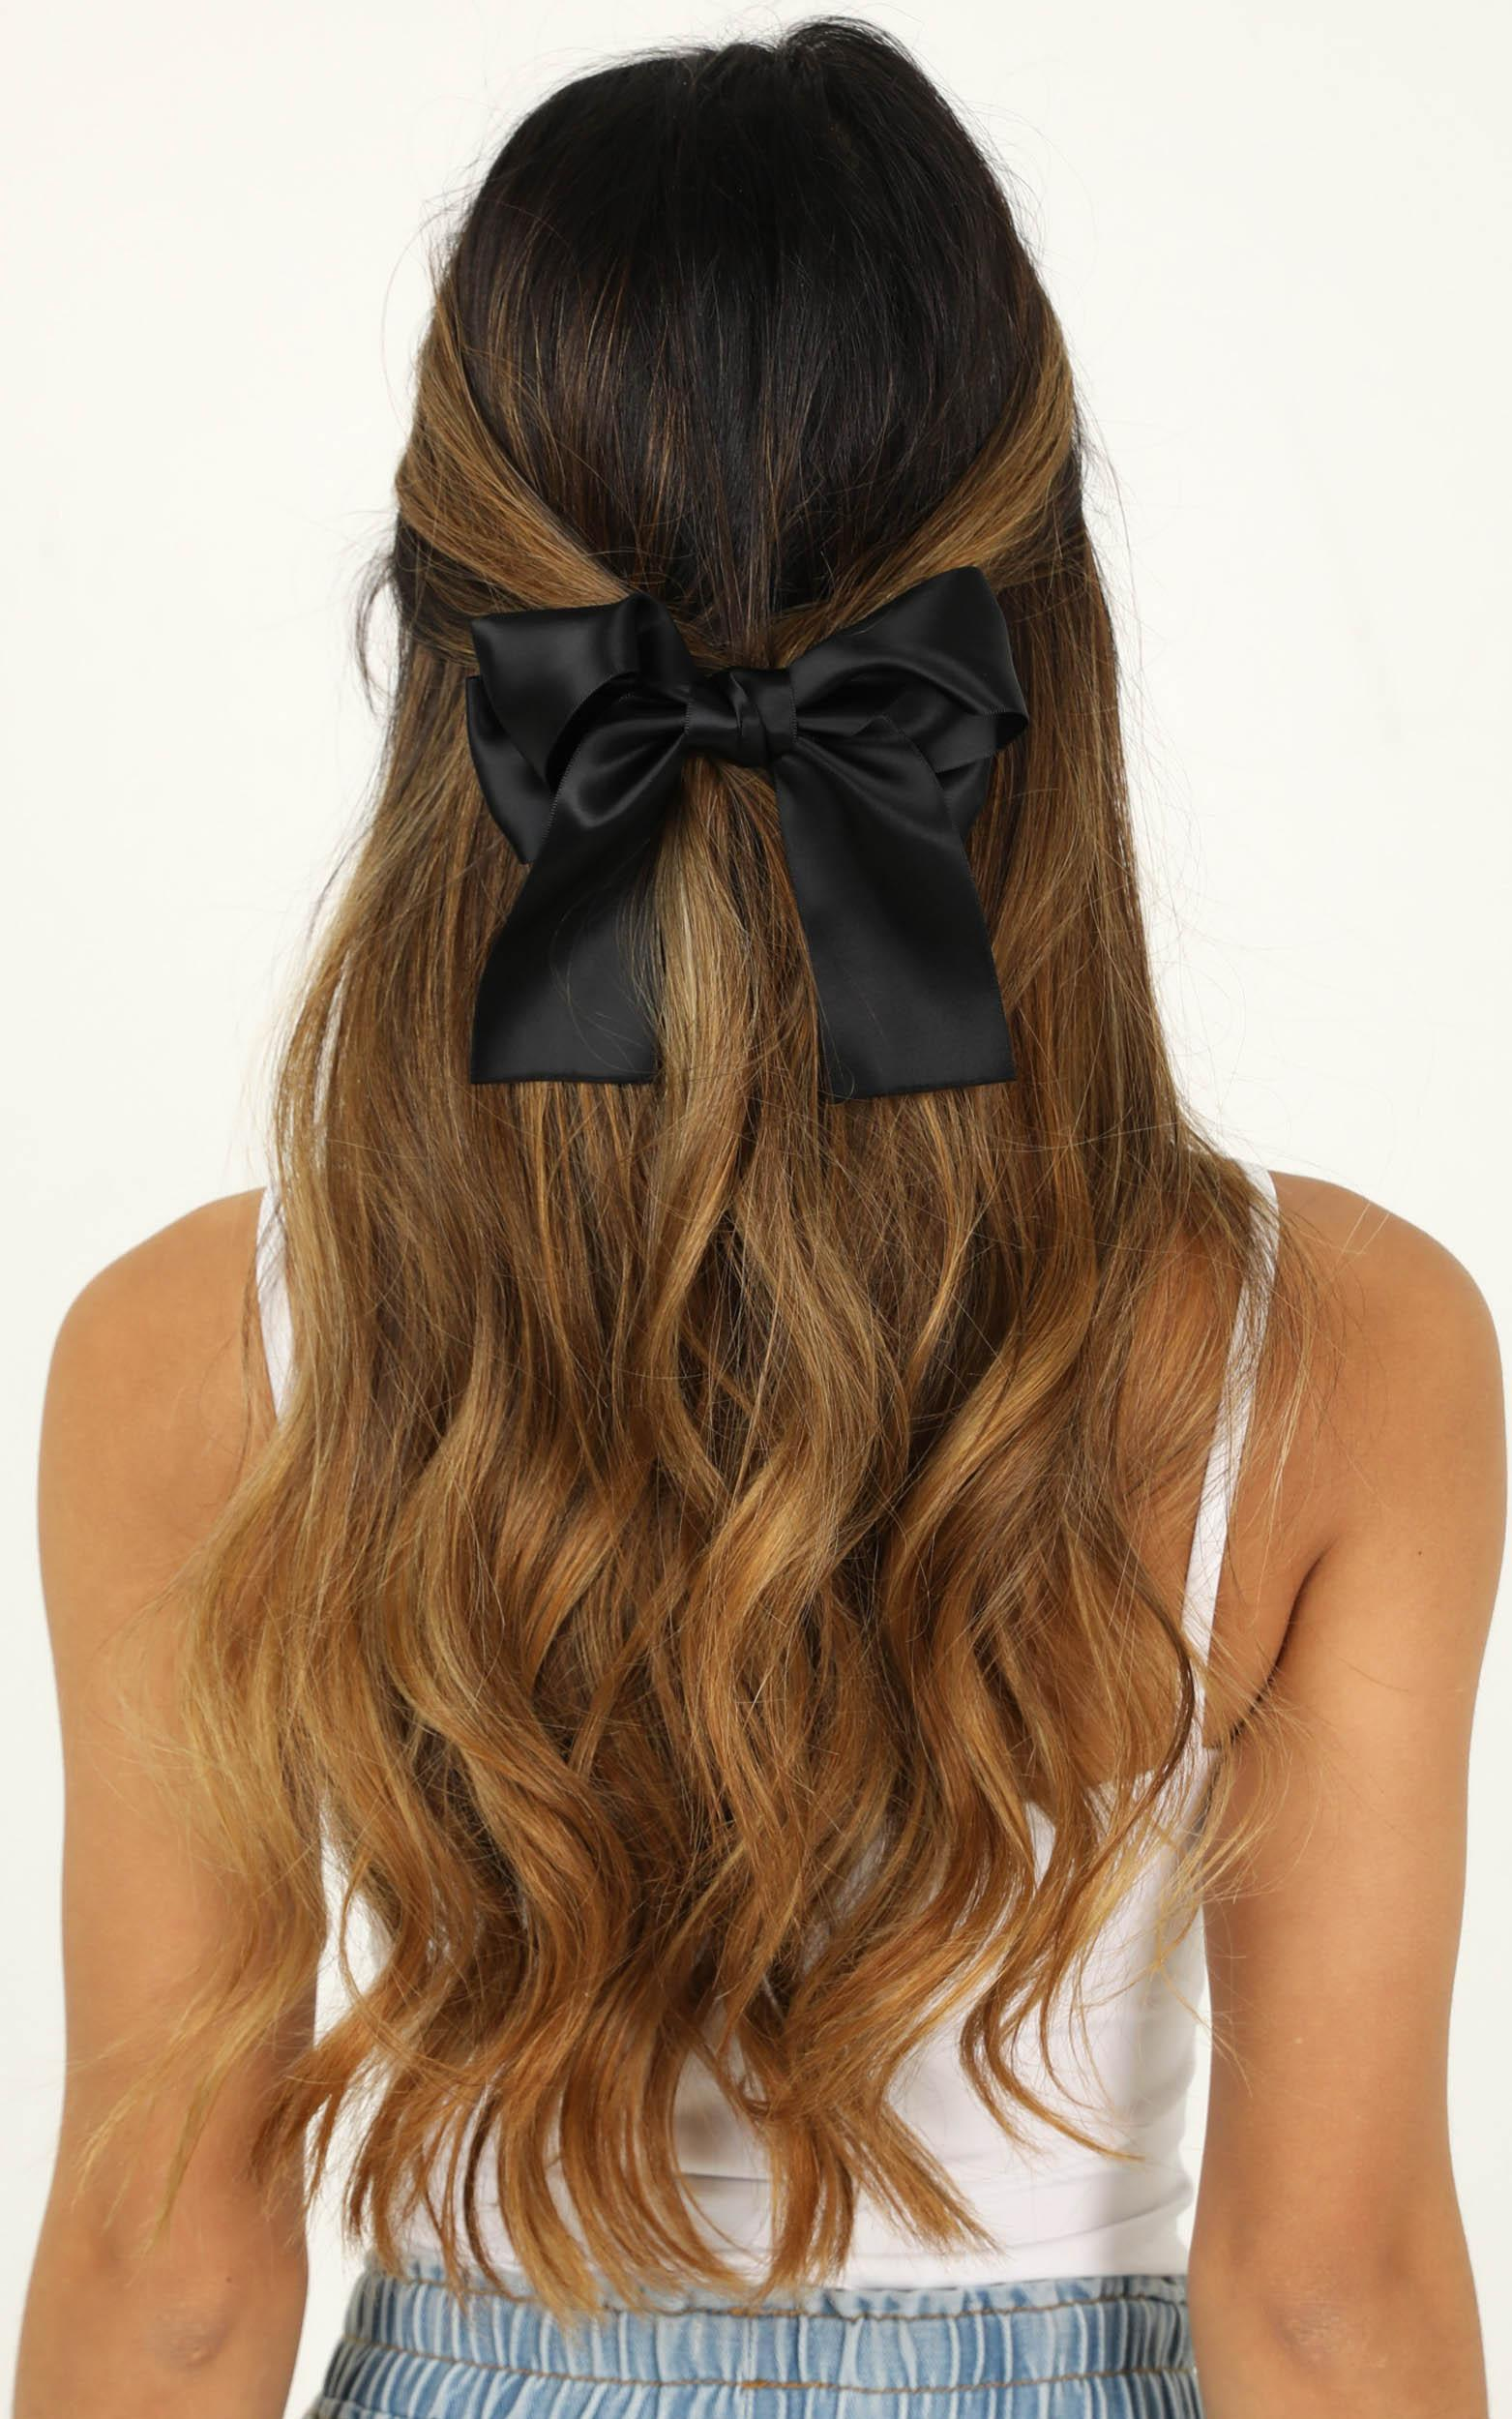 Hold Me Back Hair Bow 2 Pack In Emerald And Black Satin, , hi-res image number null